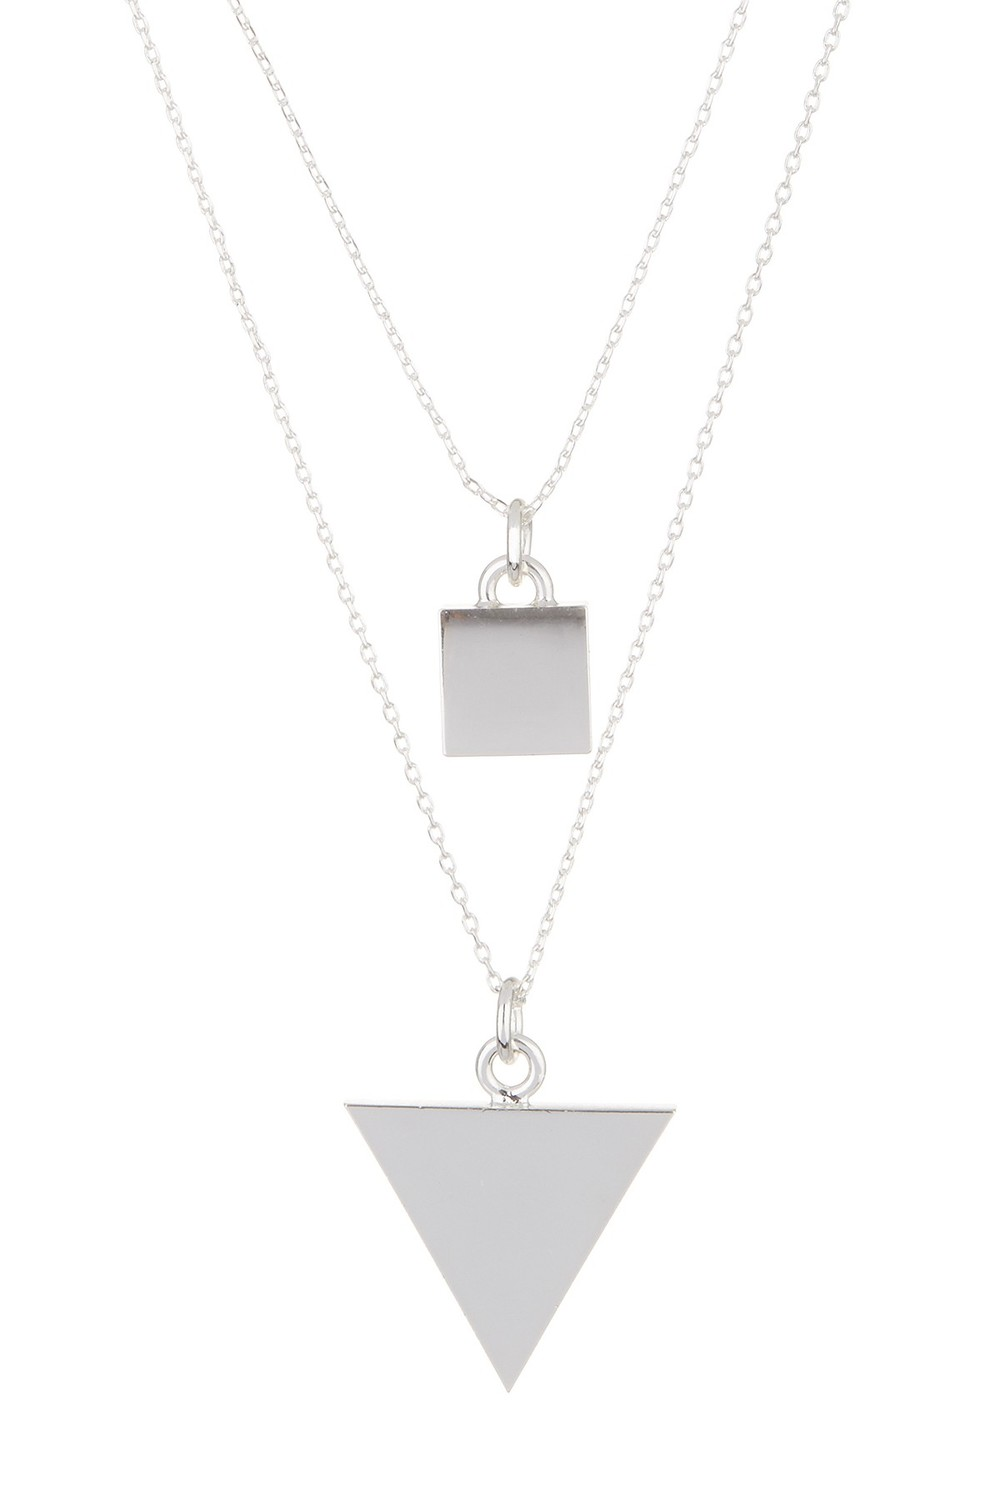 14th & Union Dual Row Geometric Necklace. Available in silver, gold. Nordstrom Rack. $12.